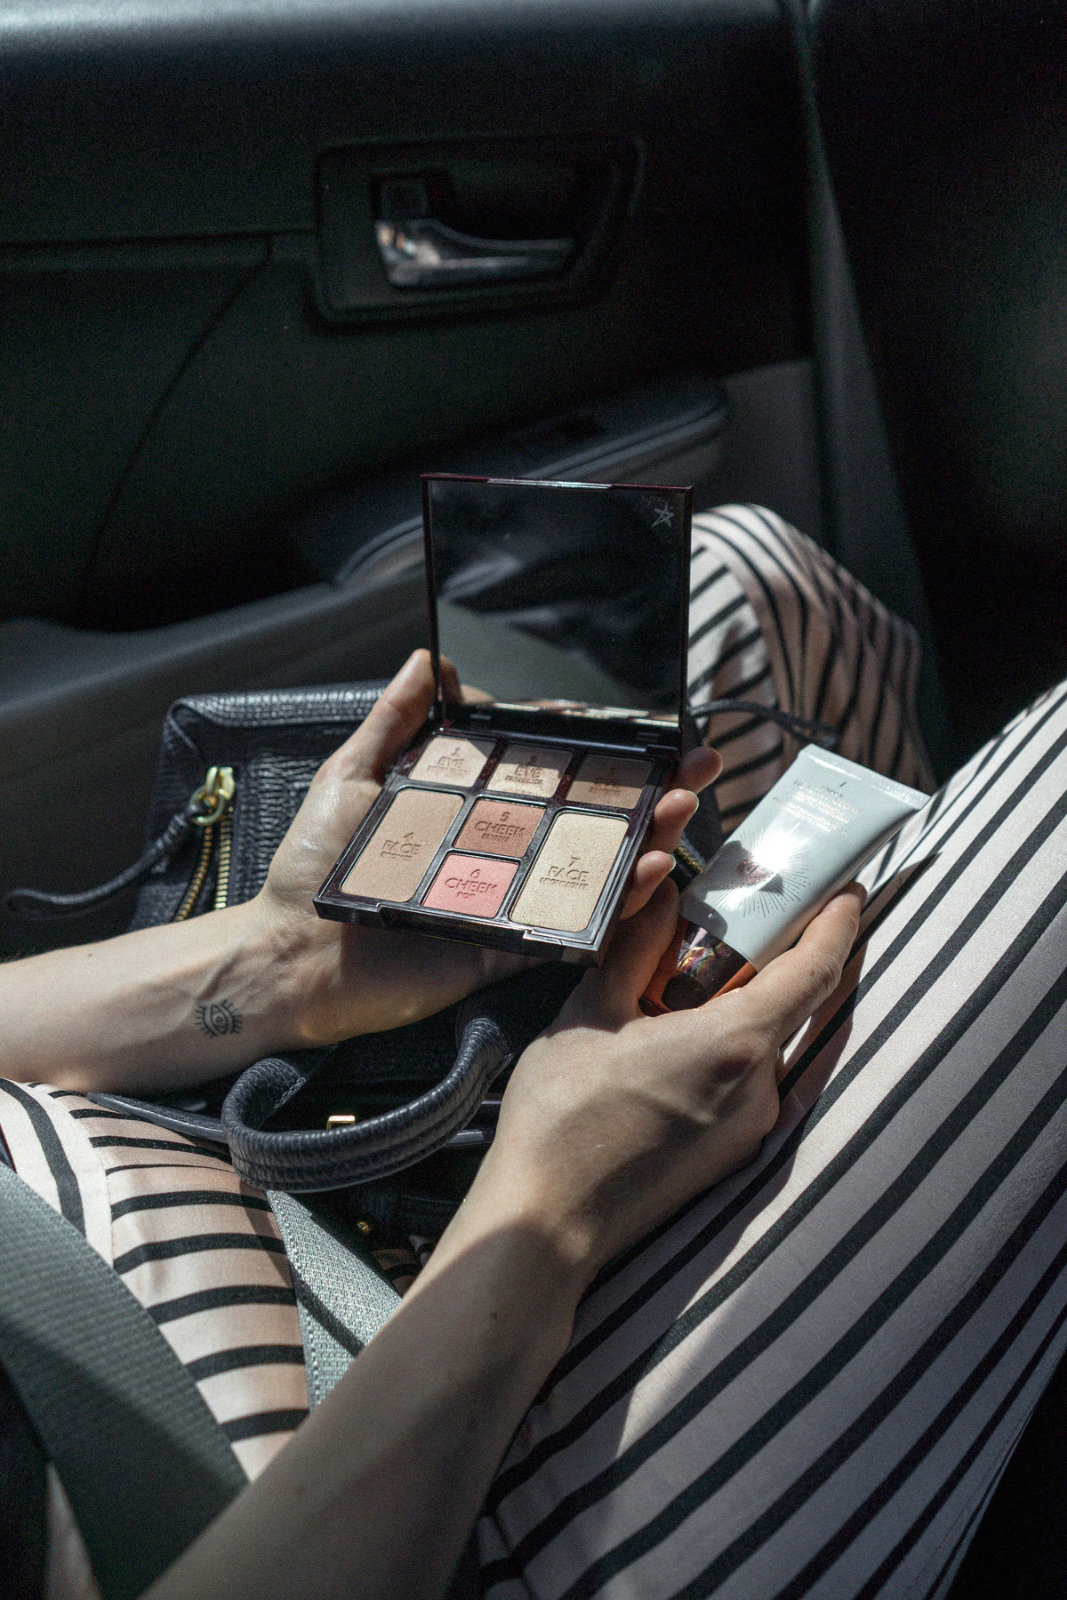 Charlotte Tilbury_Glow_Look_The-Limits-of-Control-Fashion-Fashionblogger-Blogger-Berlin-Deutschland-Modeblog-Modeblogger